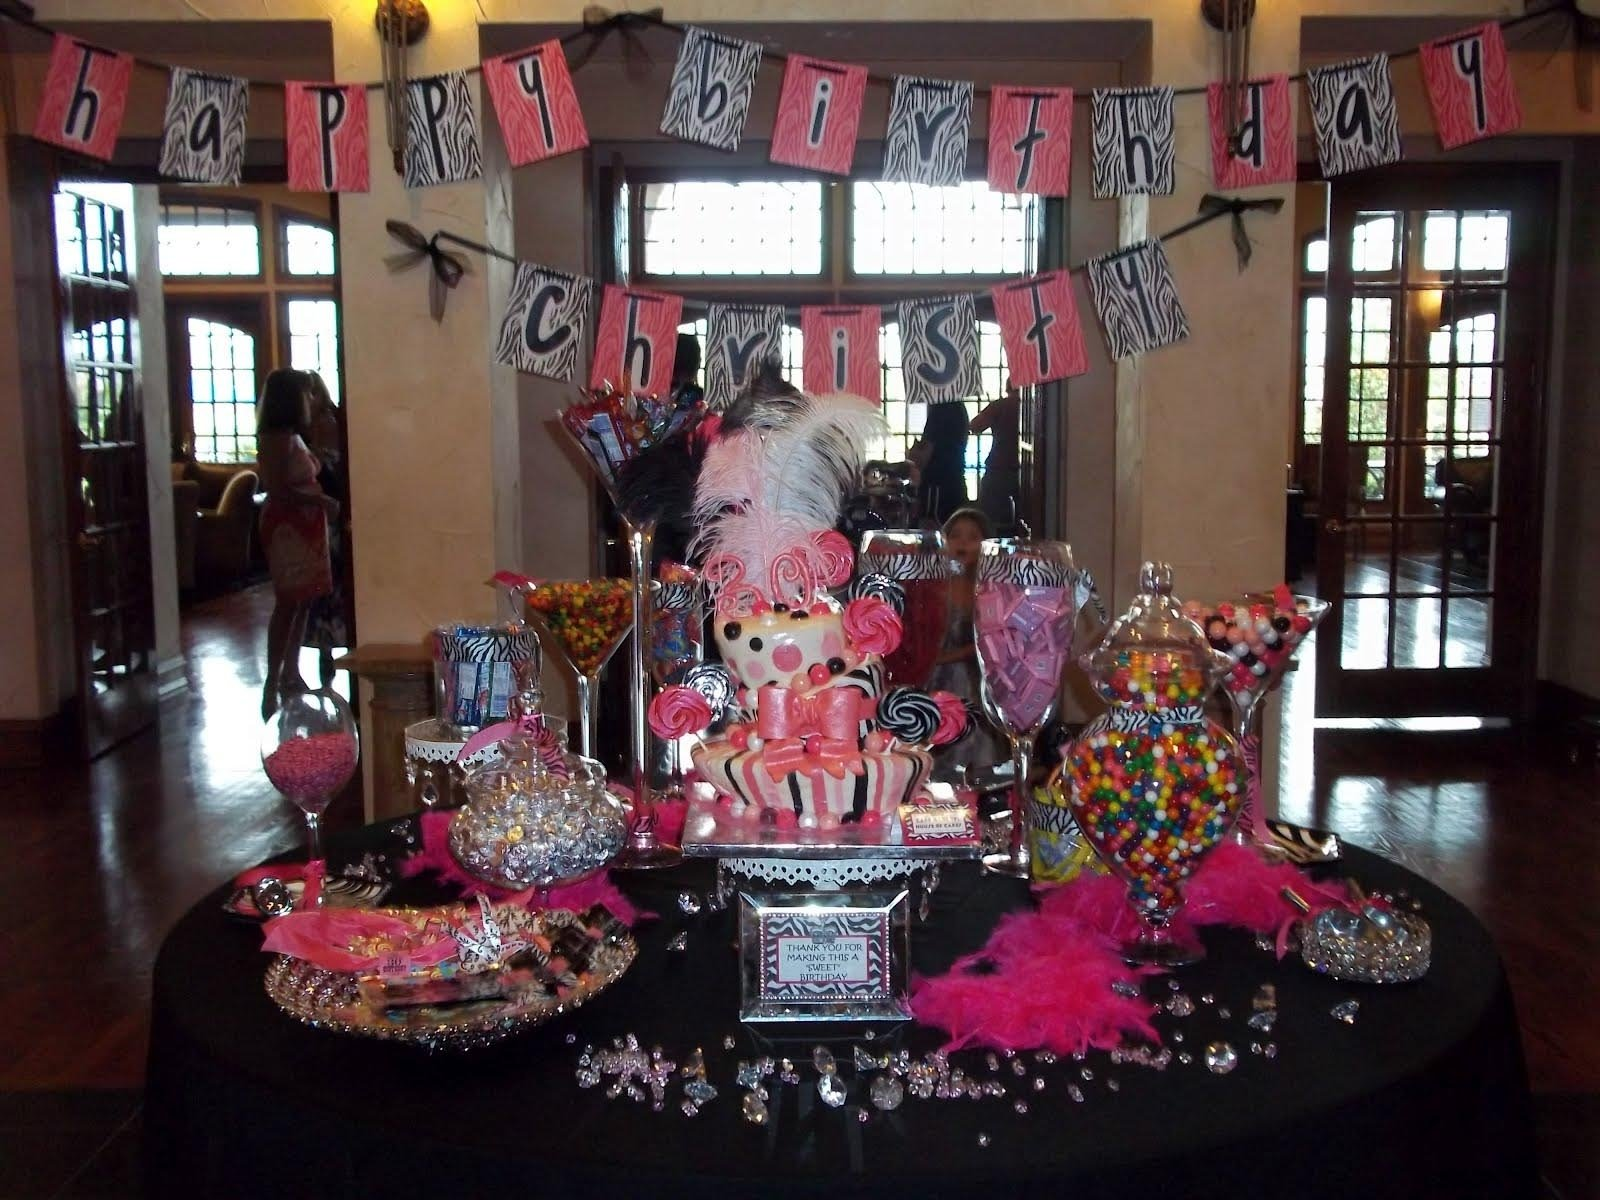 10 Attractive Surprise Birthday Party Ideas For Adults surprise 30th birthday party ideas home party ideas 6 2020